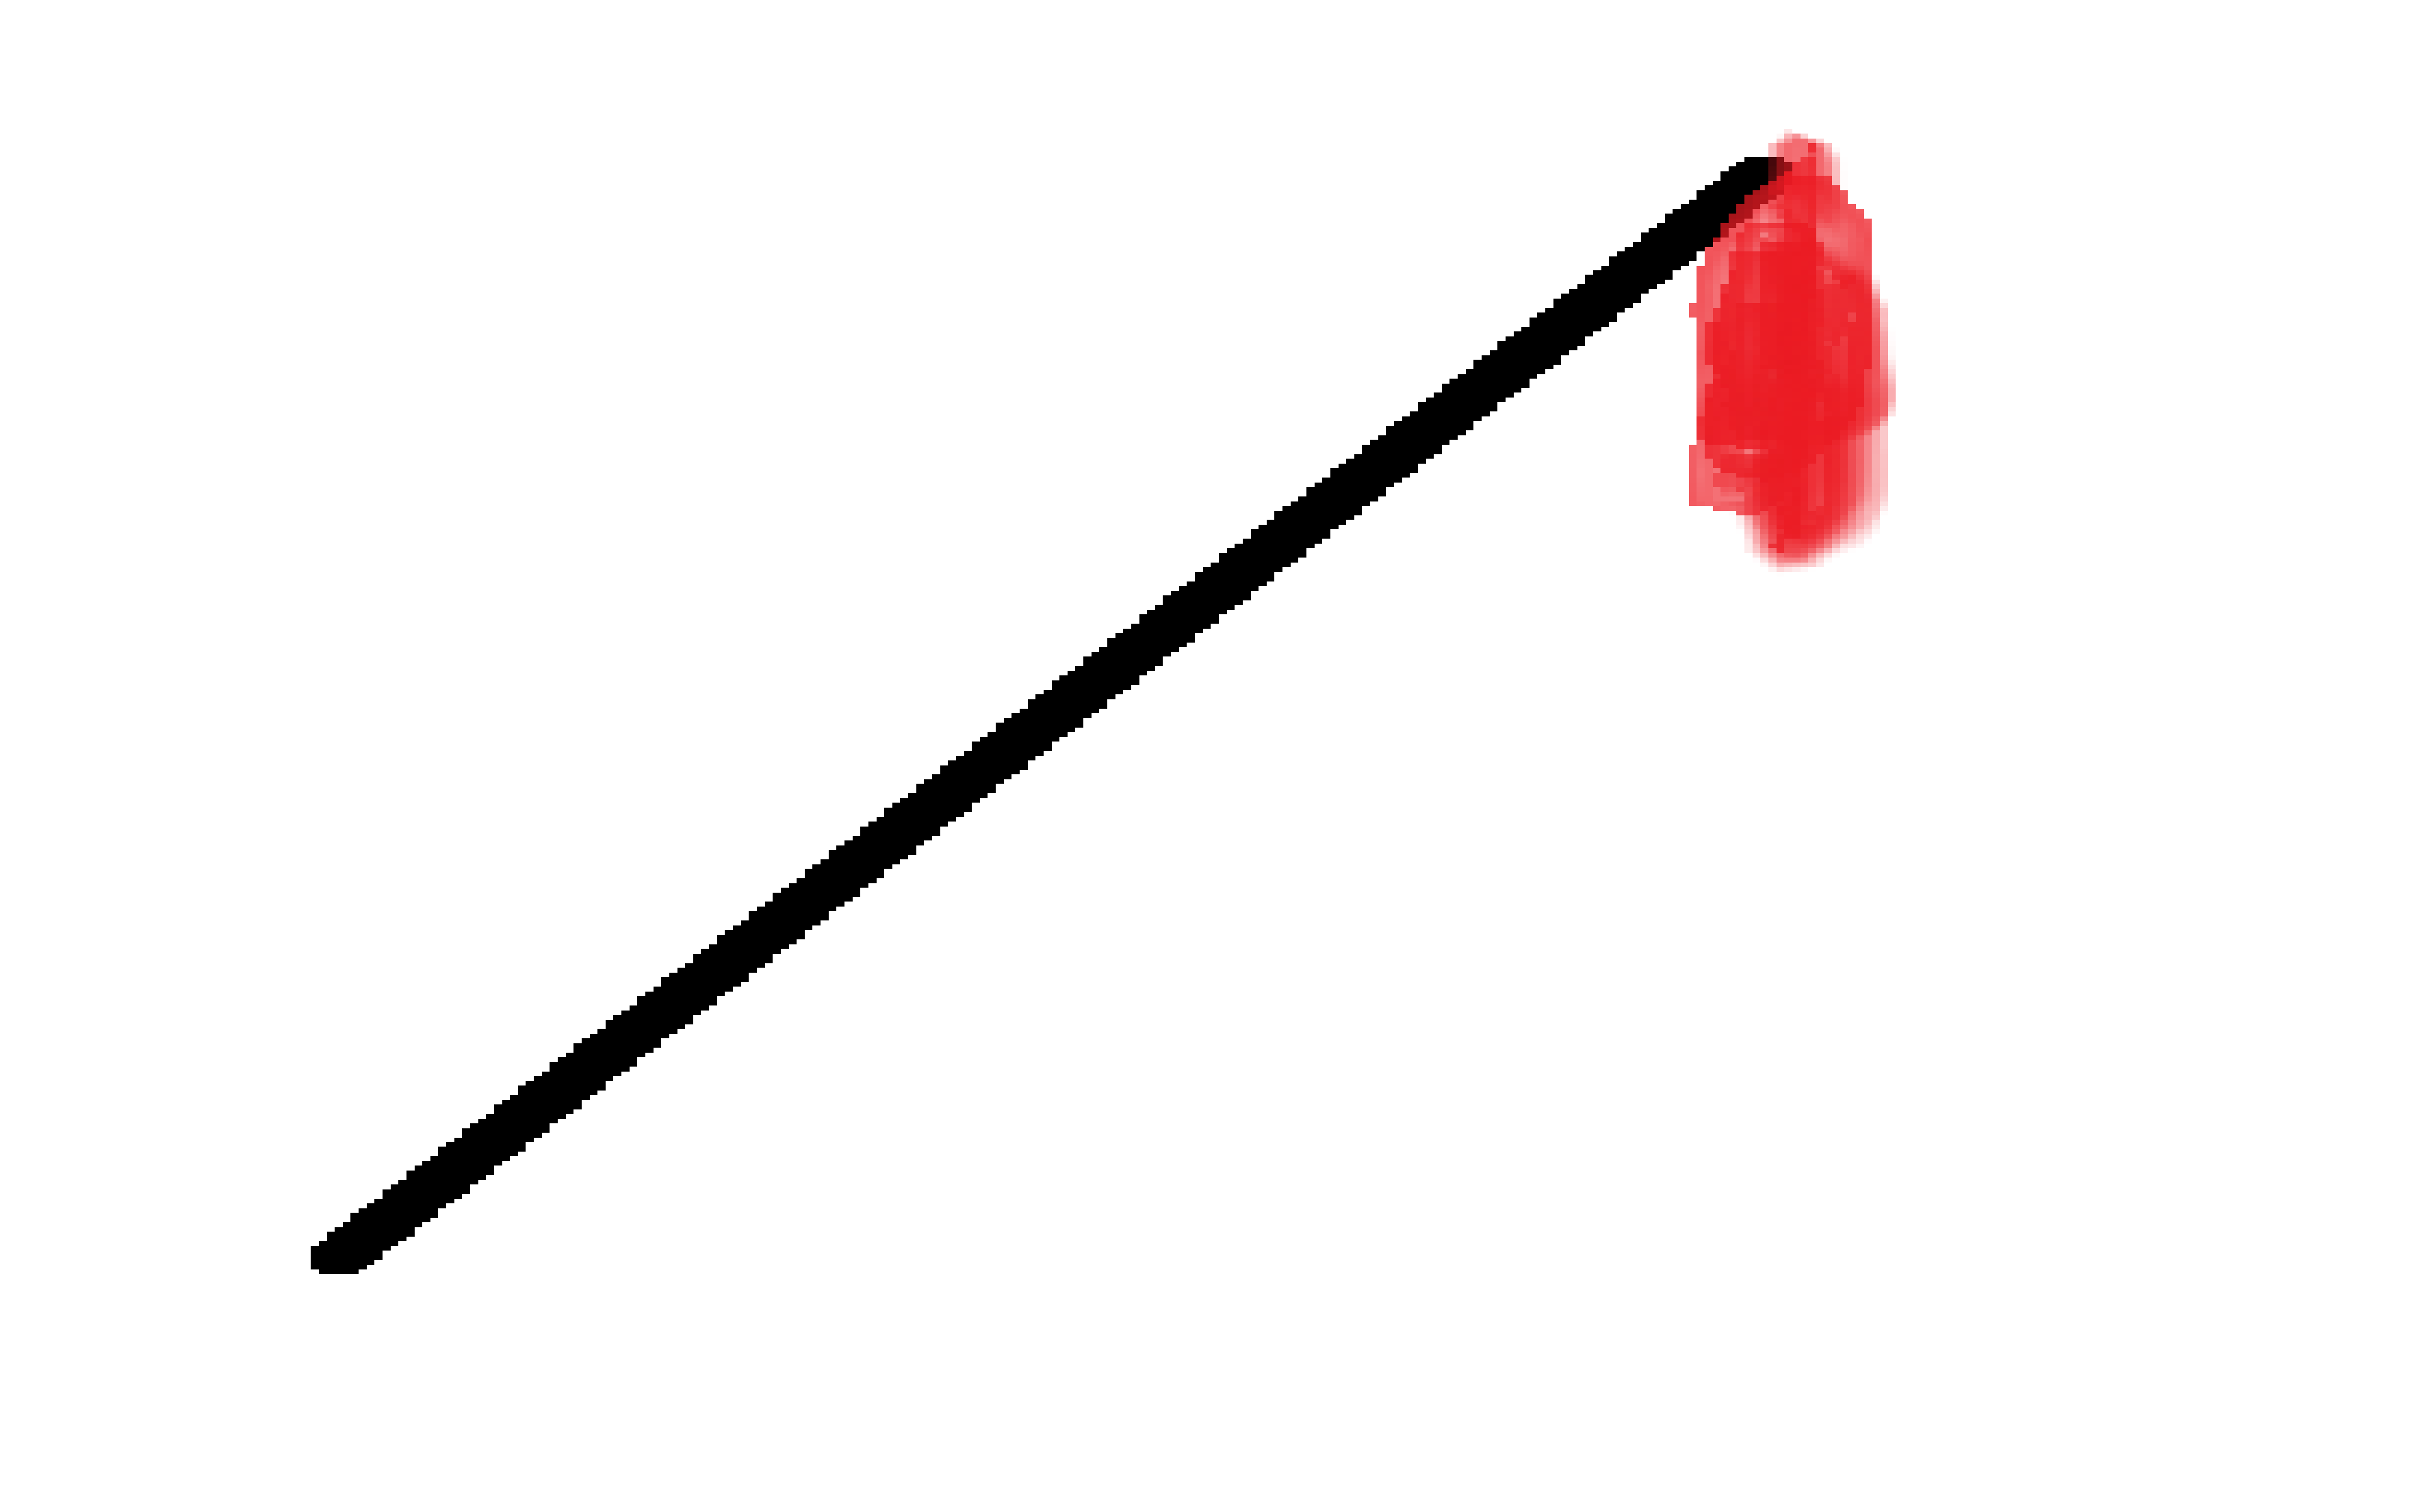 Hobo Stick PNG - 53265